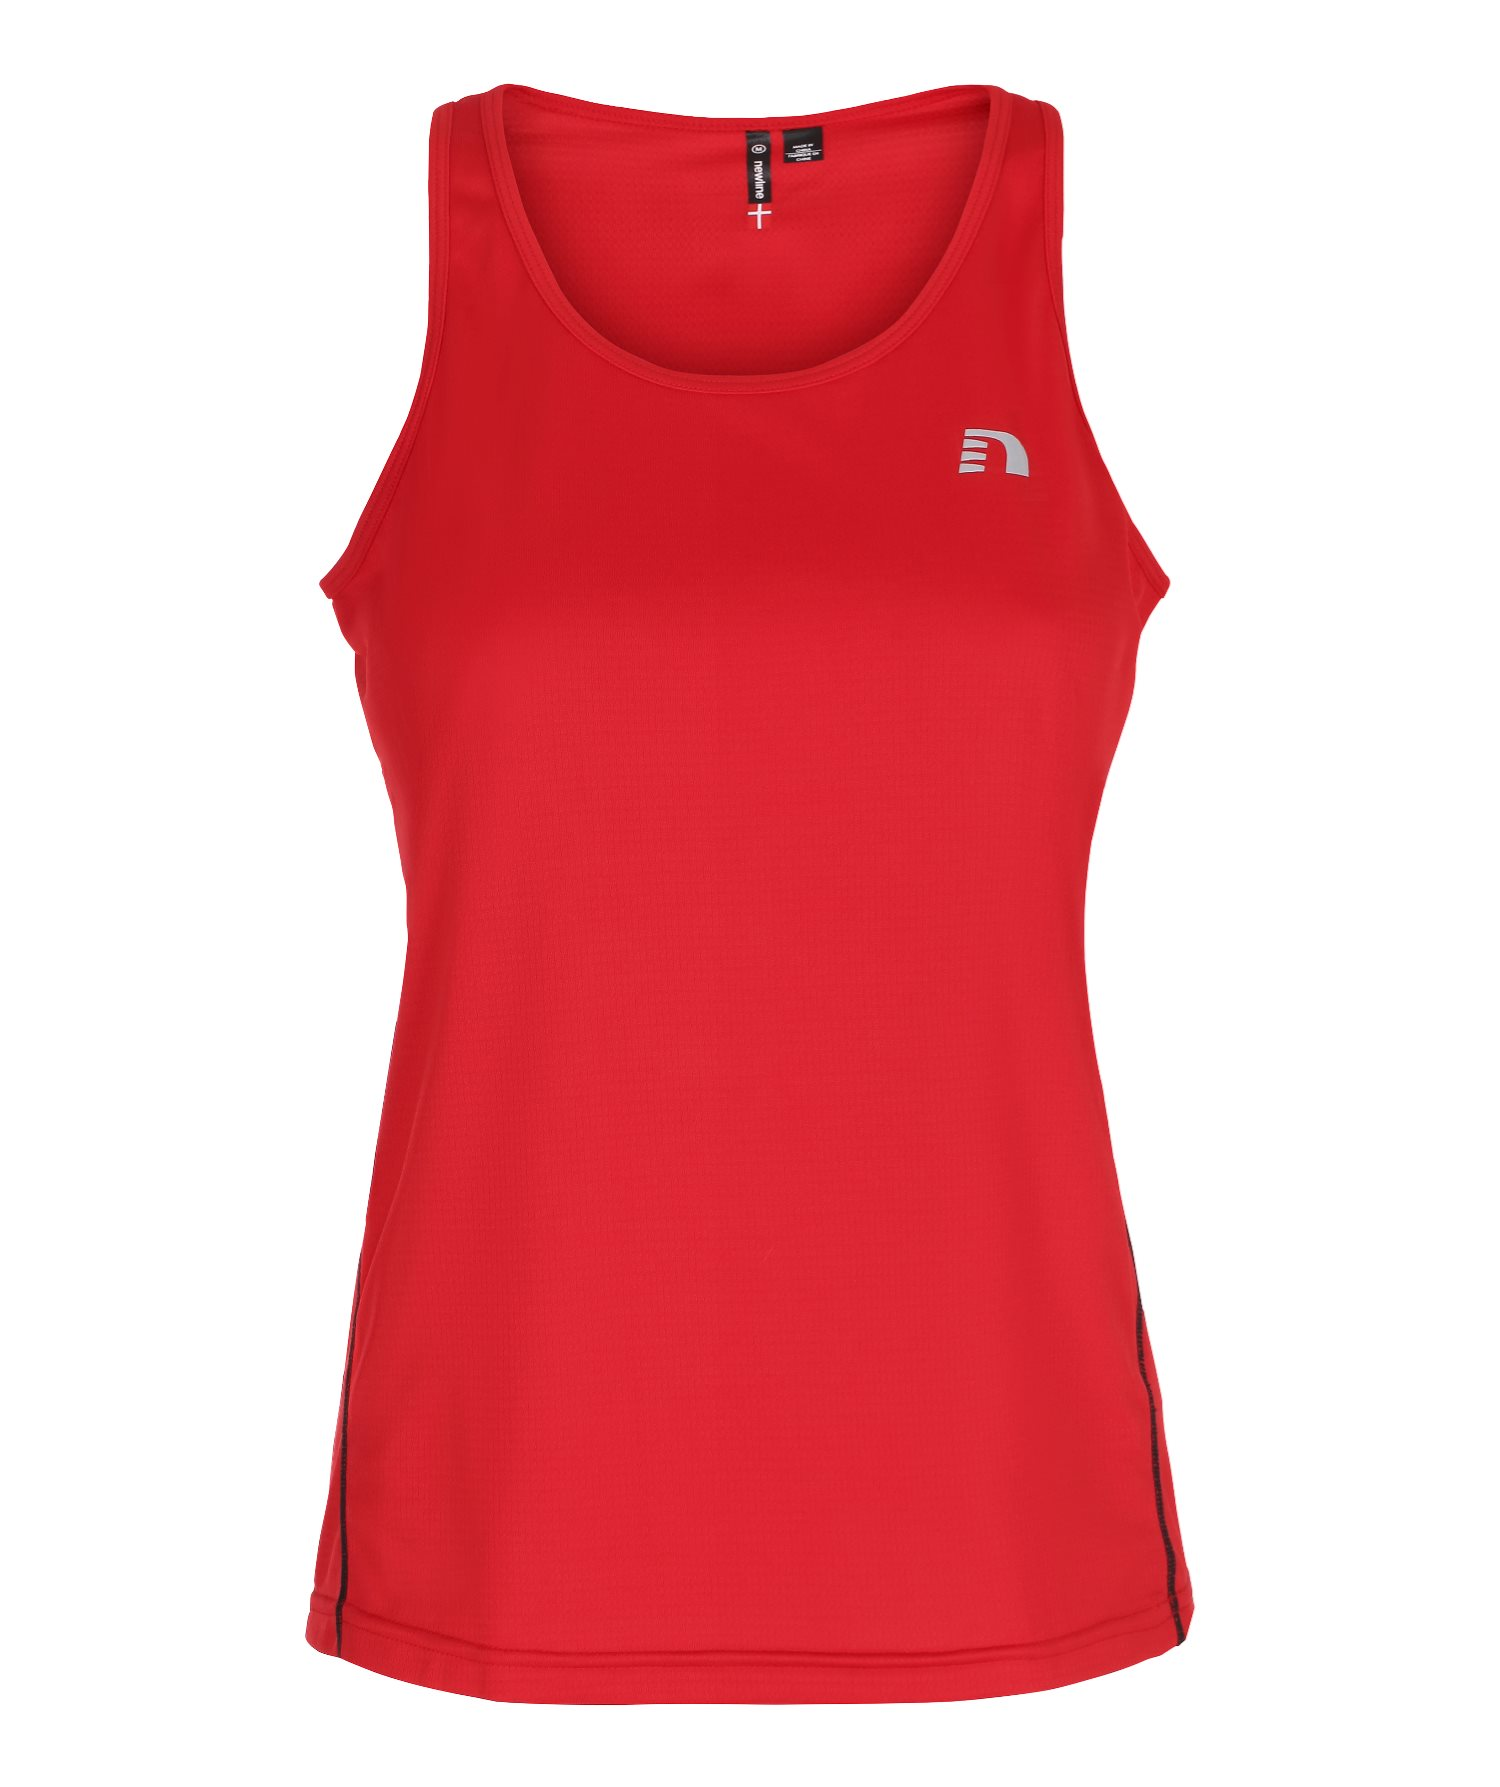 Newline Base Coolskin Singlet Damen